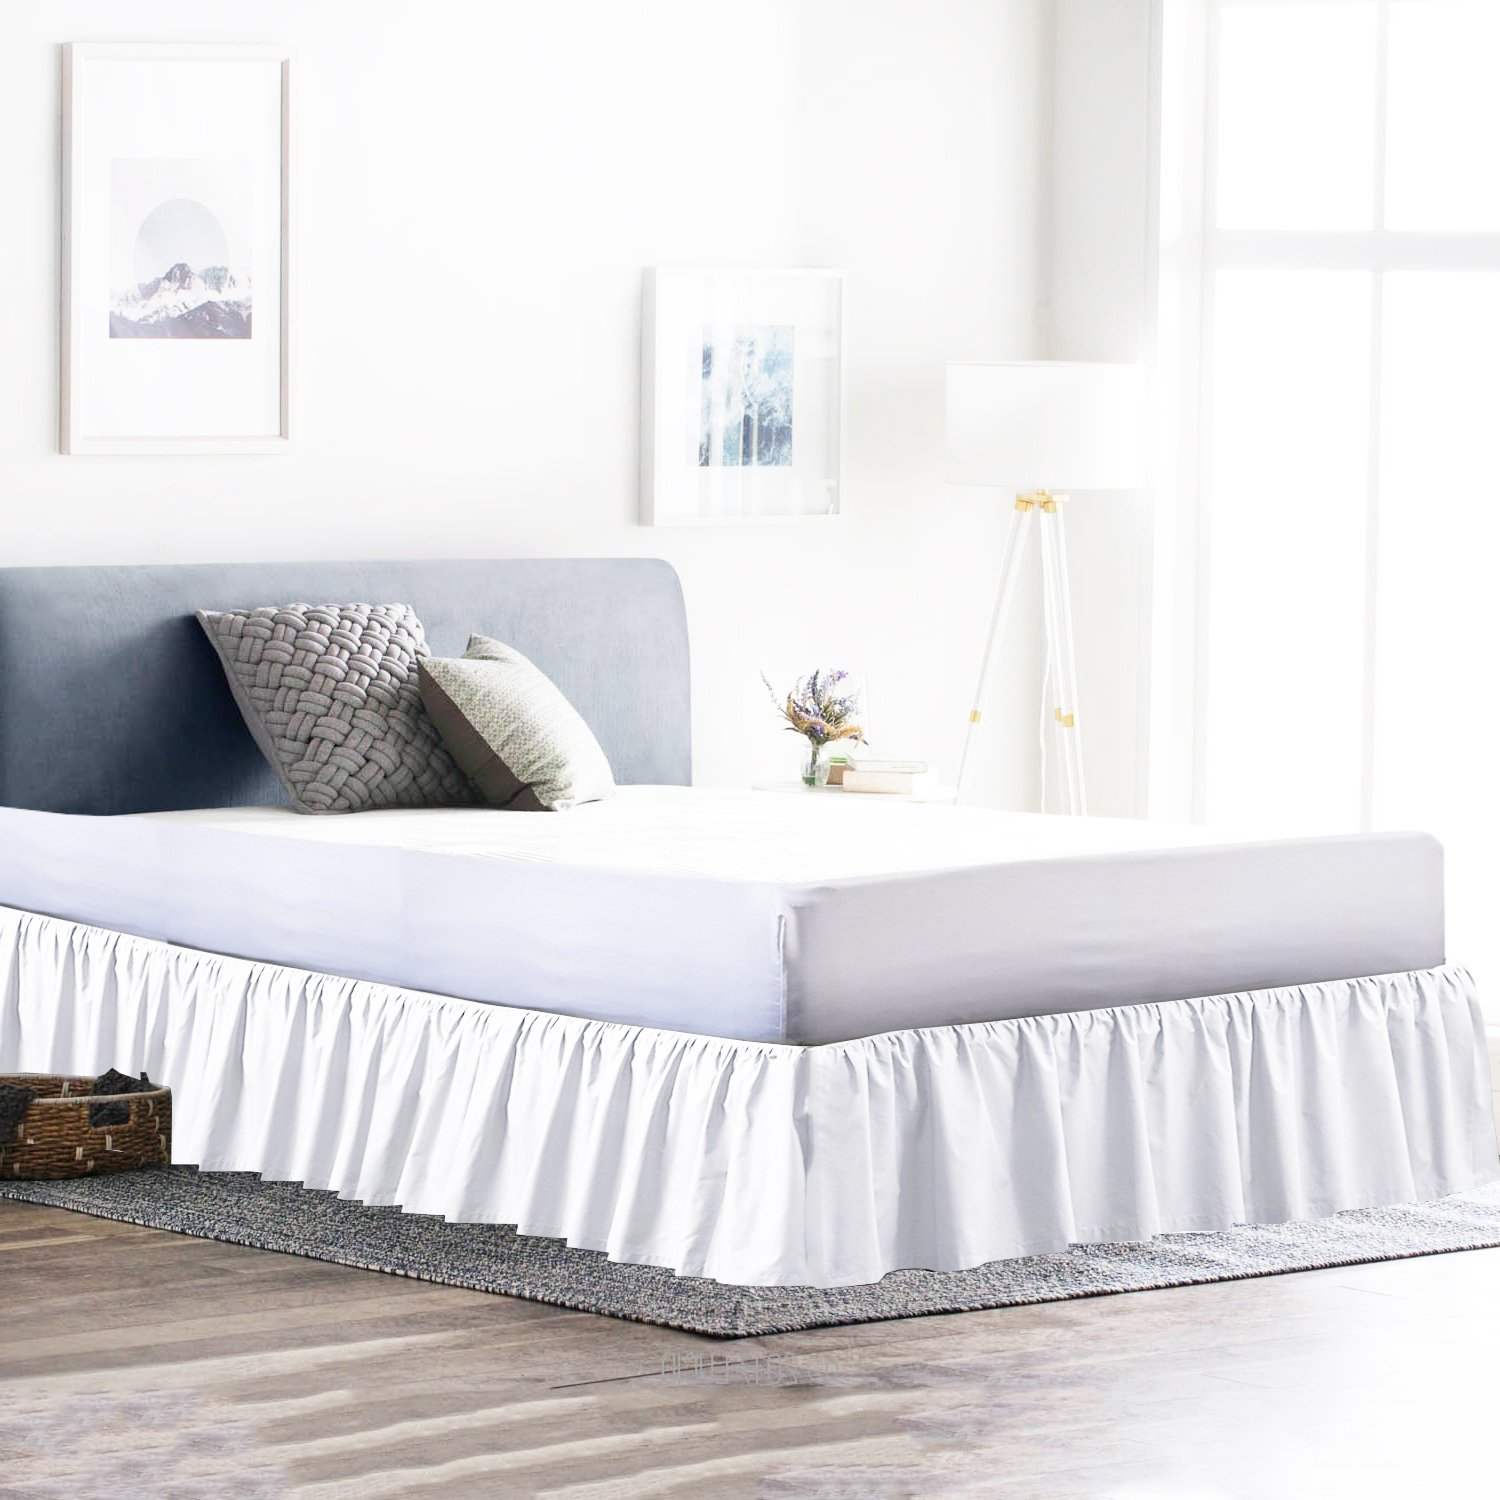 Dust Ruffle Bed Skirt 100% Microfiber Bed Wrap with Platform (+18 Inch Drop)- Easy Fit Gathered Style 3 Sided Coverage (Queen, White)